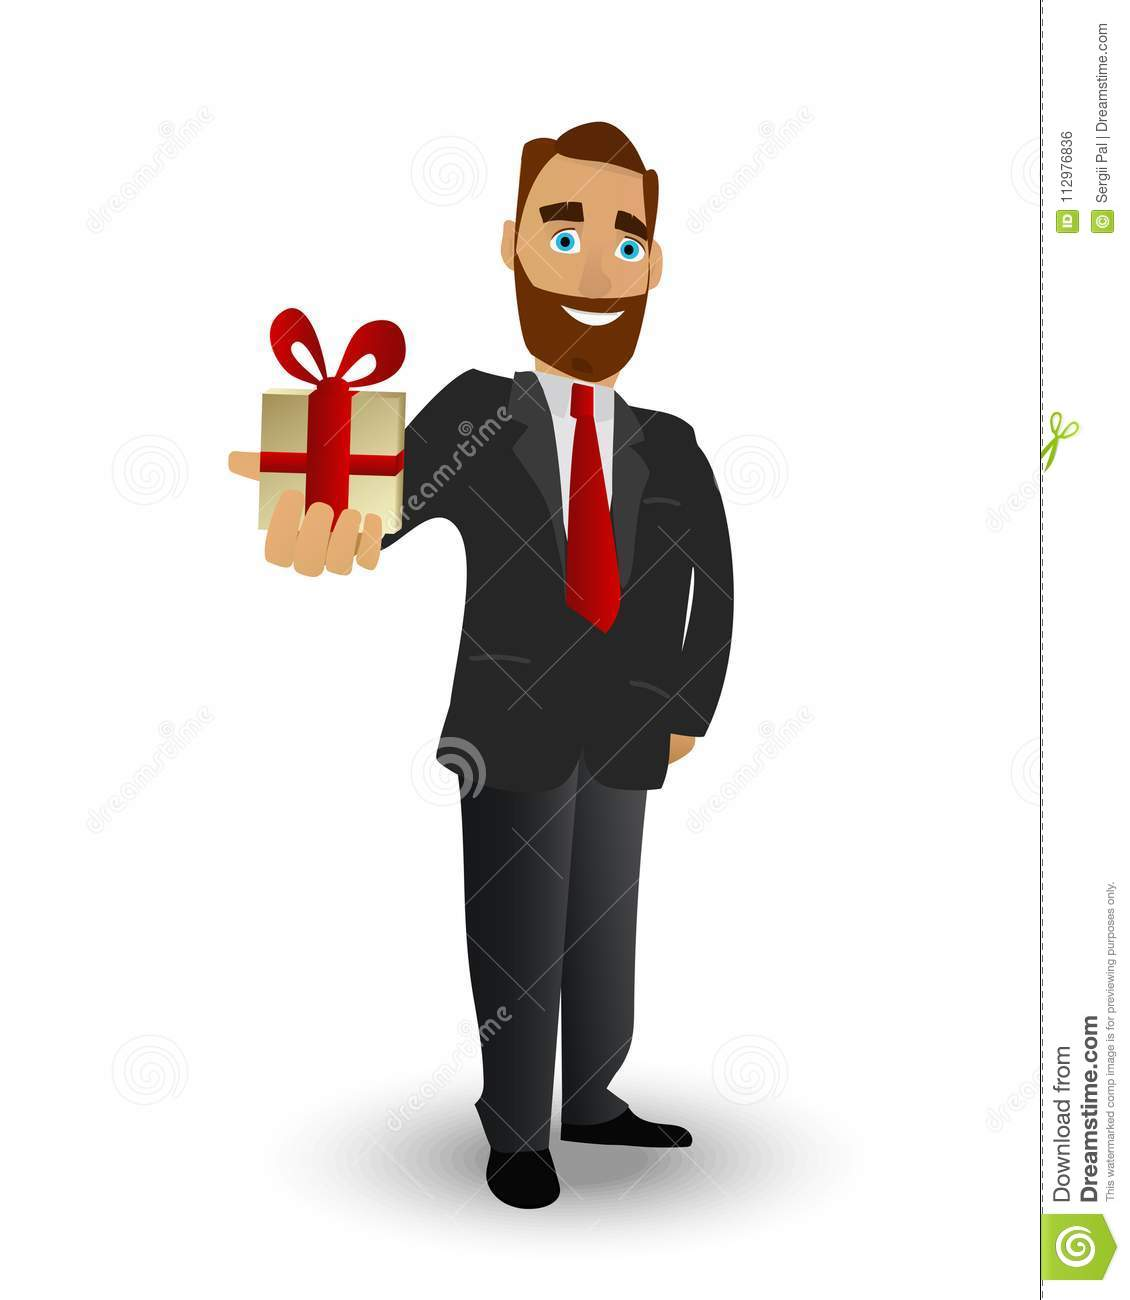 Man gives a present tied with a red ribbon for his sweetheart. Vector illustration in classic cartoon style isolated on